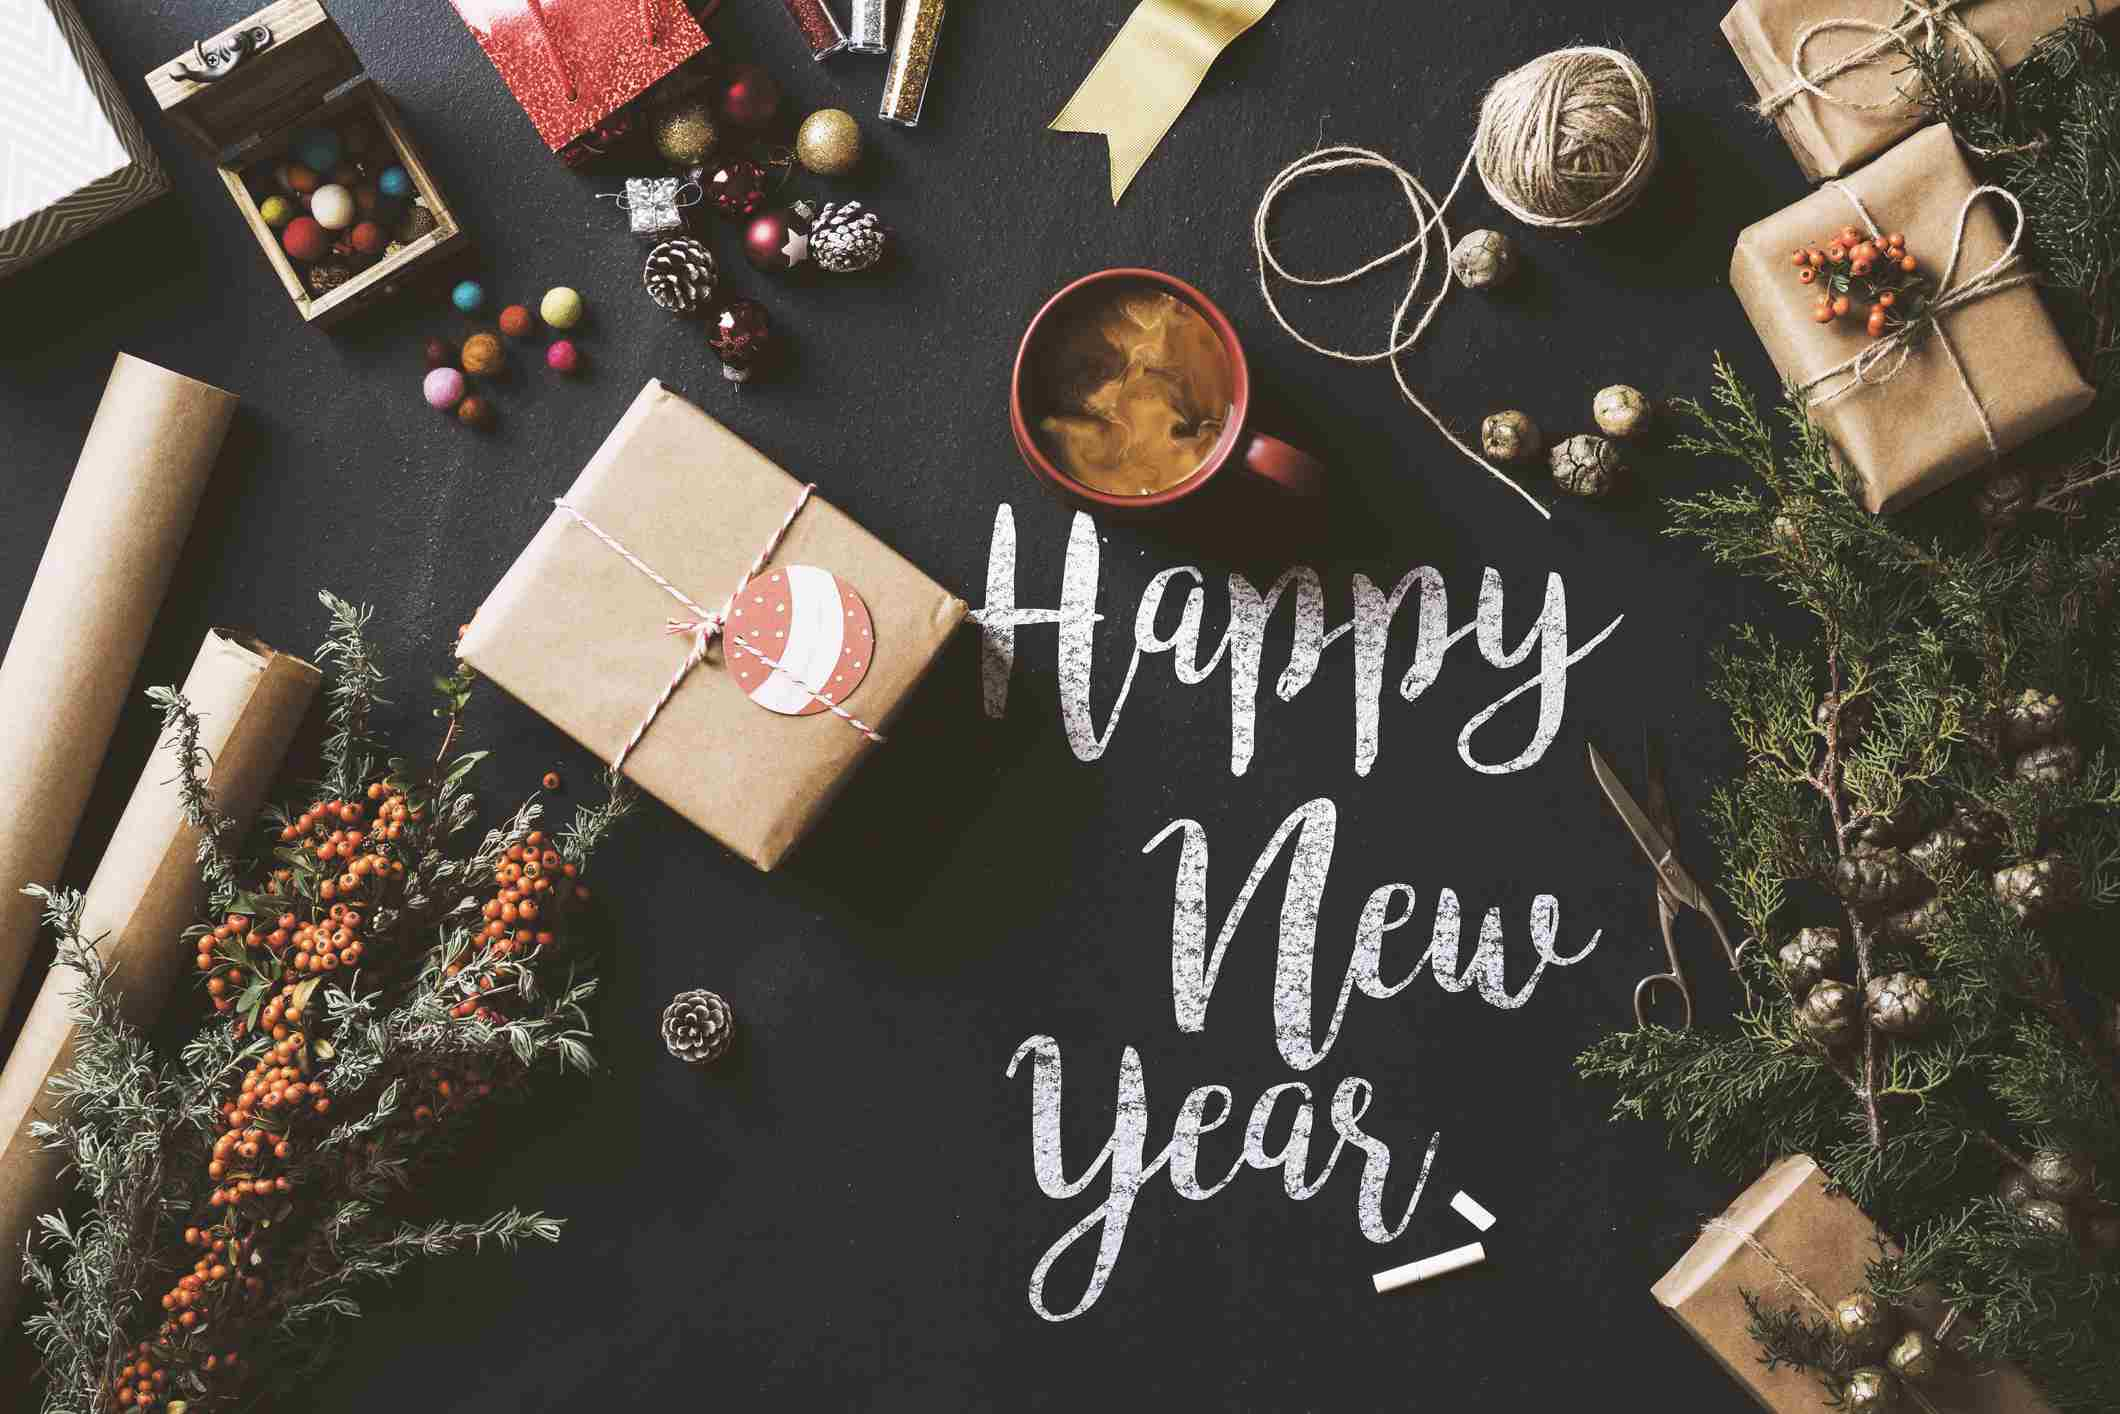 New Year Wordsearch, Crossword Puzzle, And More - Printable New Year's Crossword Puzzle